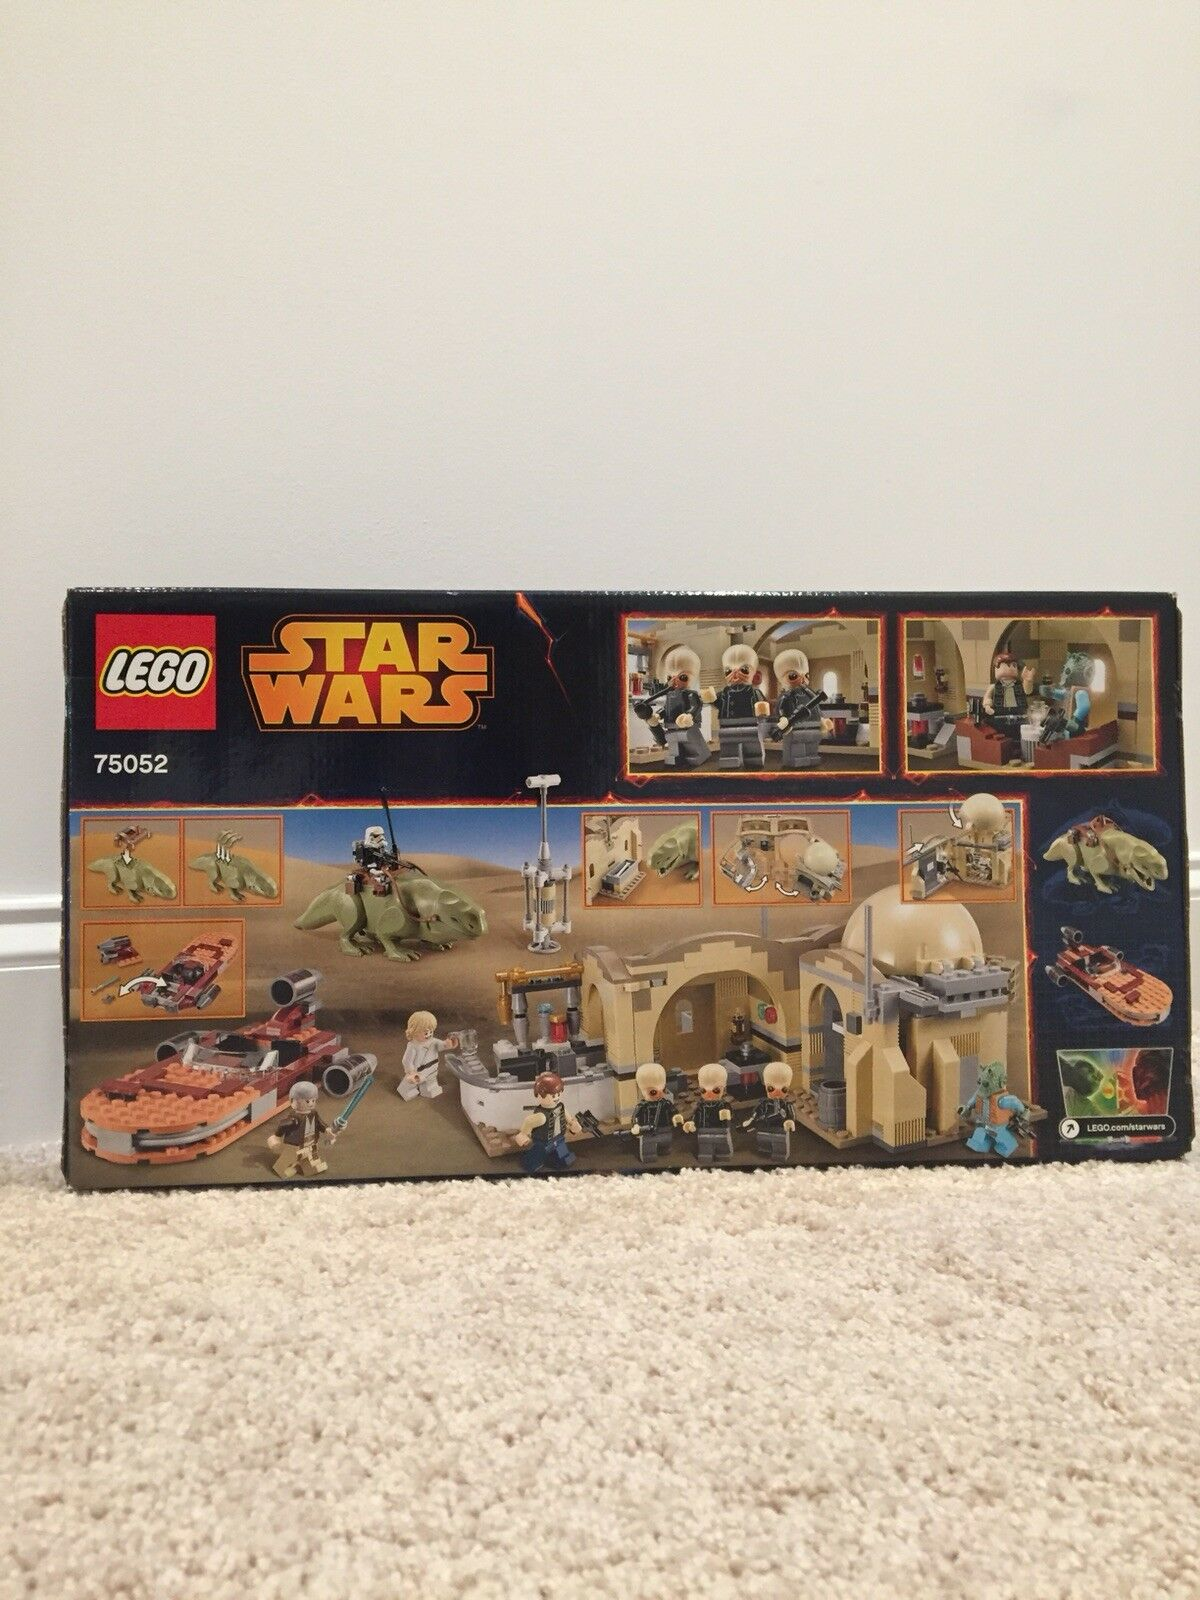 New & Sealed LEGO Star Wars Set 75052 Mos Eisley Cantina RETIROT